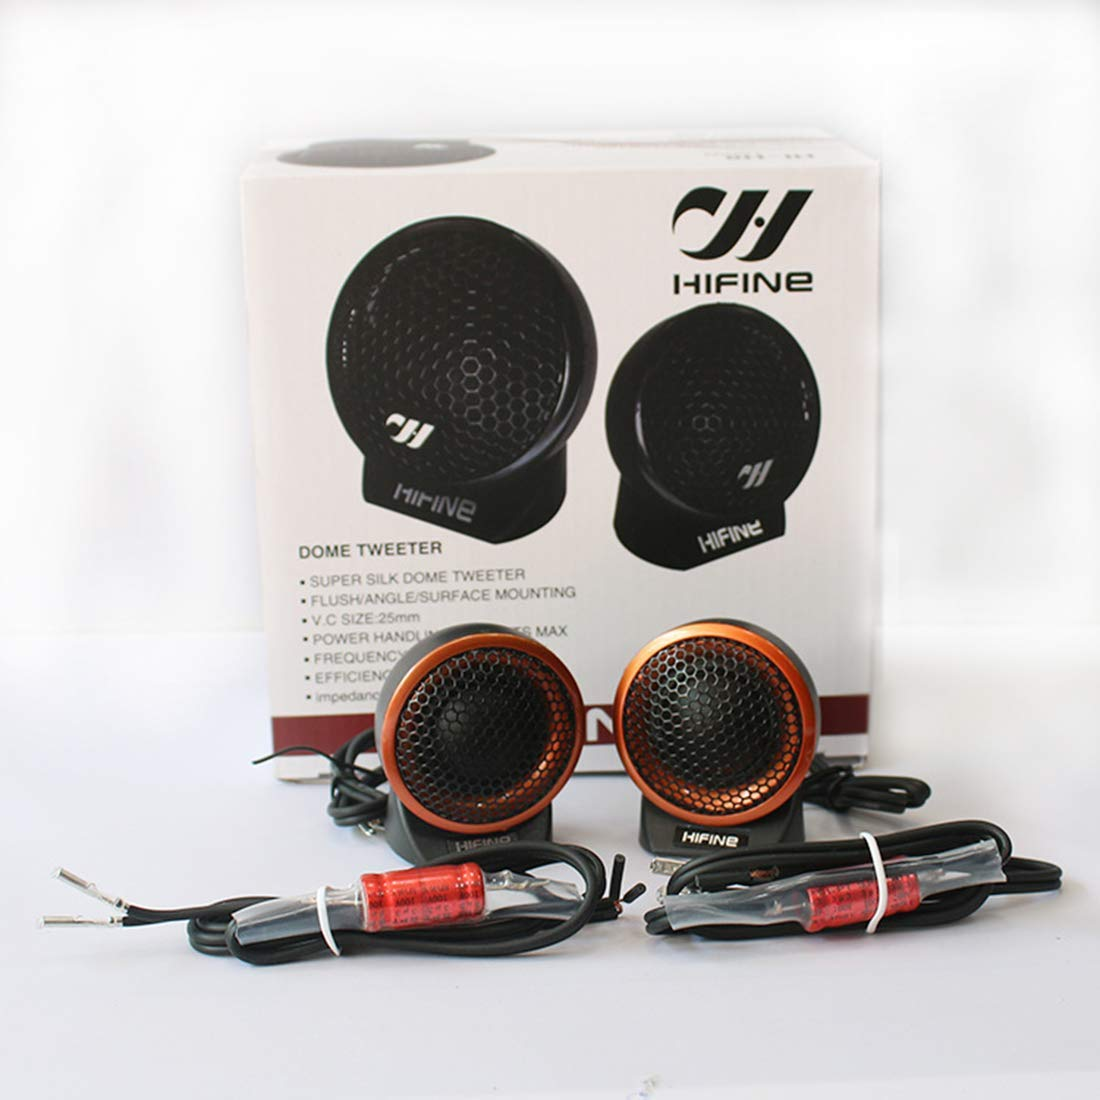 Car Audio Speakers Car Audio Speakers Tweeter Speakers Coaxial Speaker Audio Component Tweeters System Rear Full Range Premium Auto Speakers 1-Inch Tweeter Kit 25mm Original Sound Playback